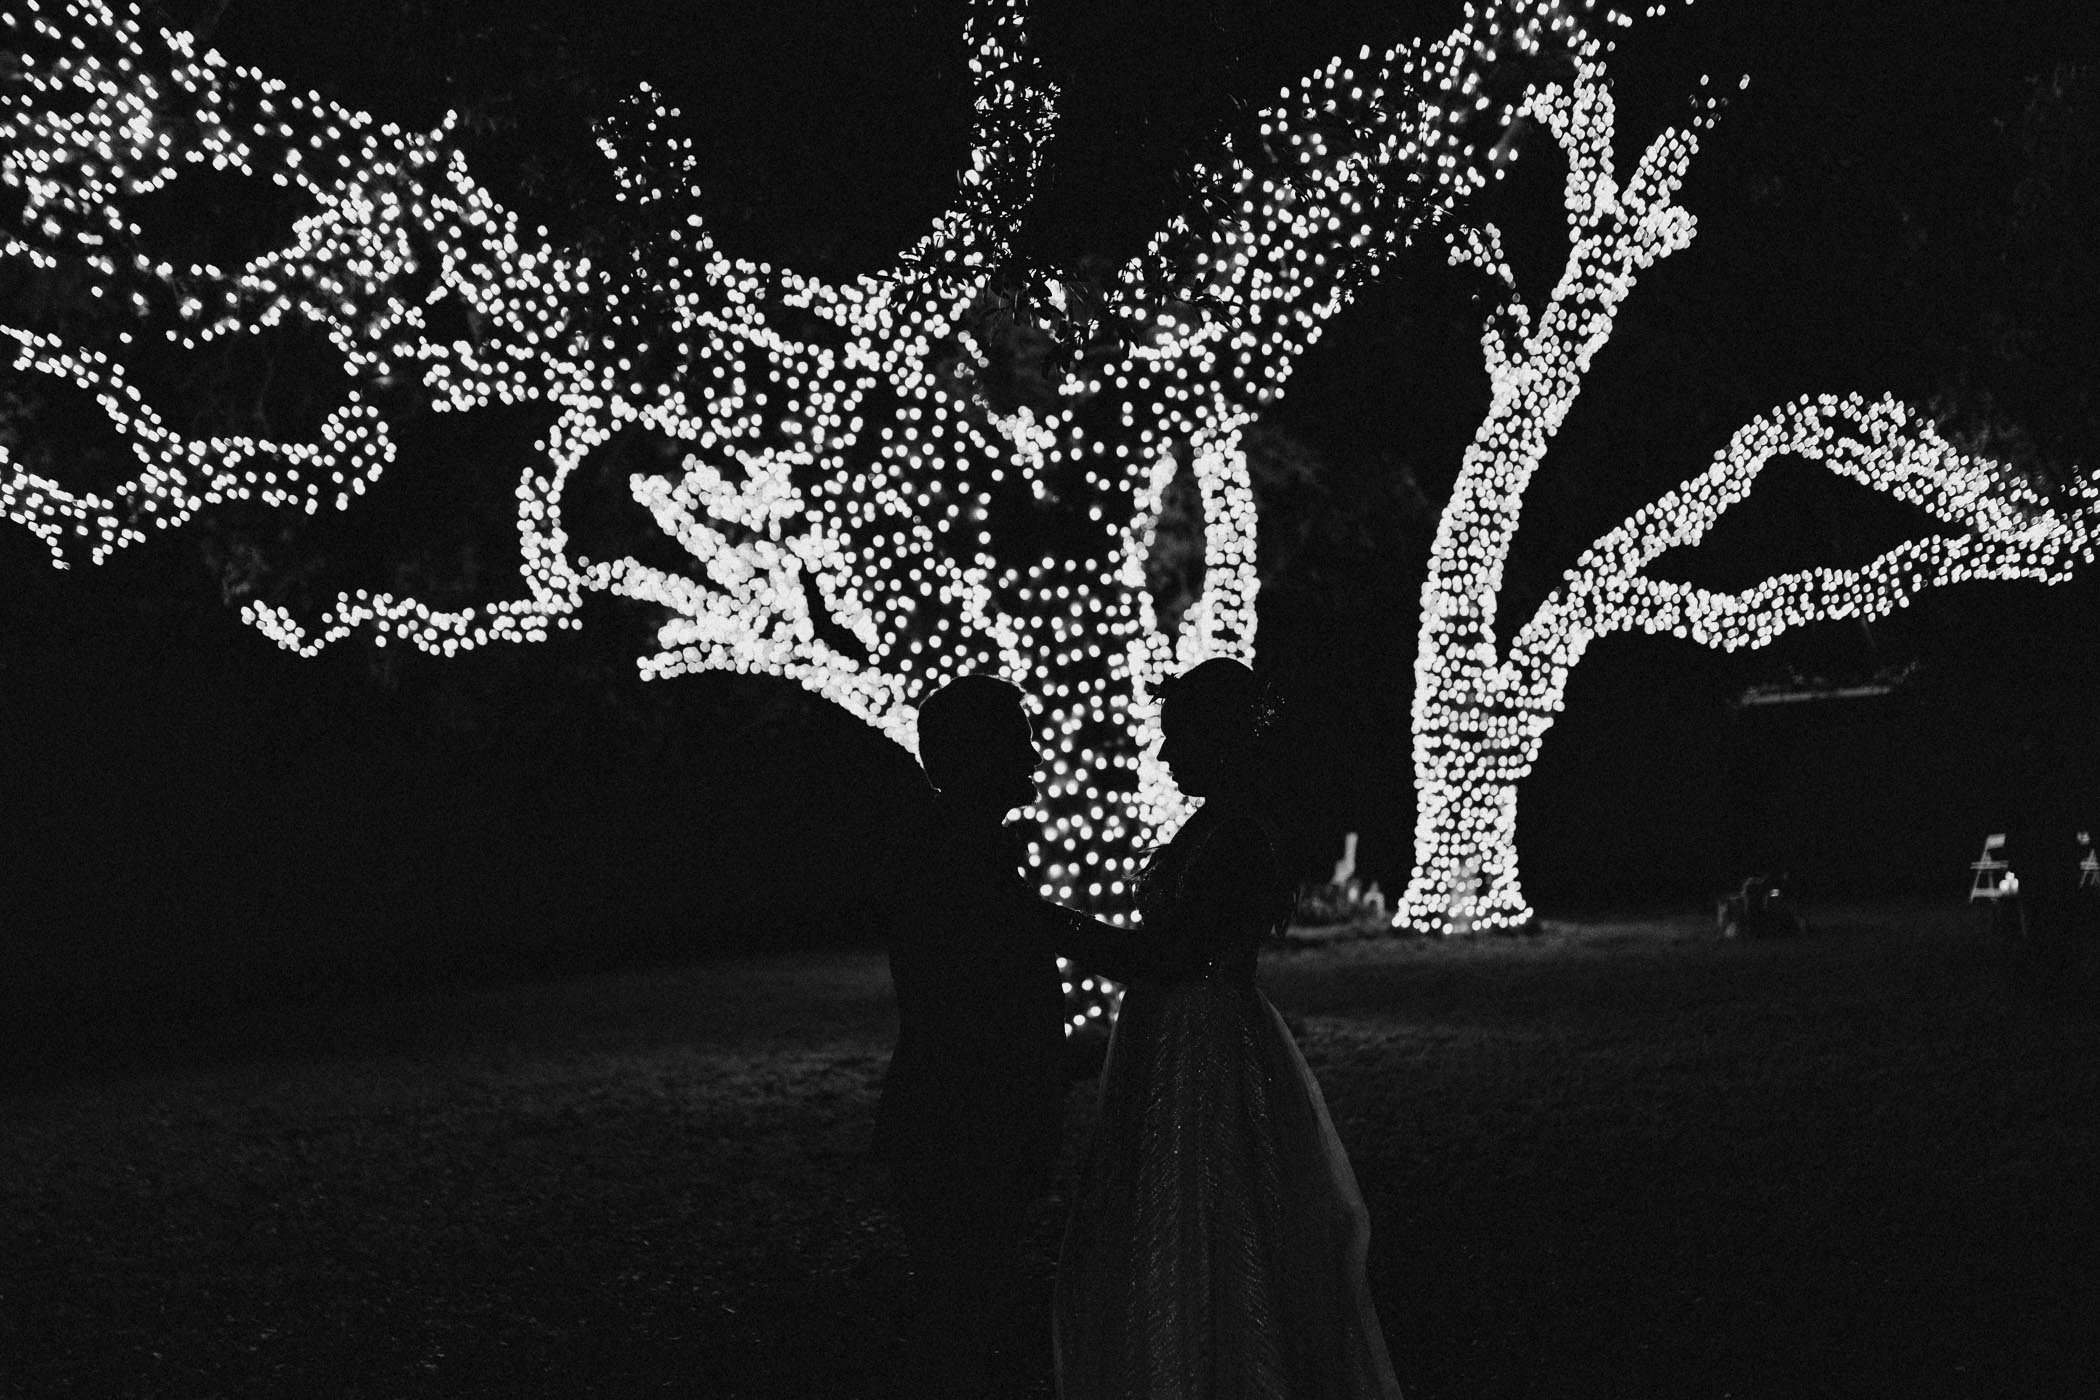 Black and white silhouette of bride and groom in front of string lights